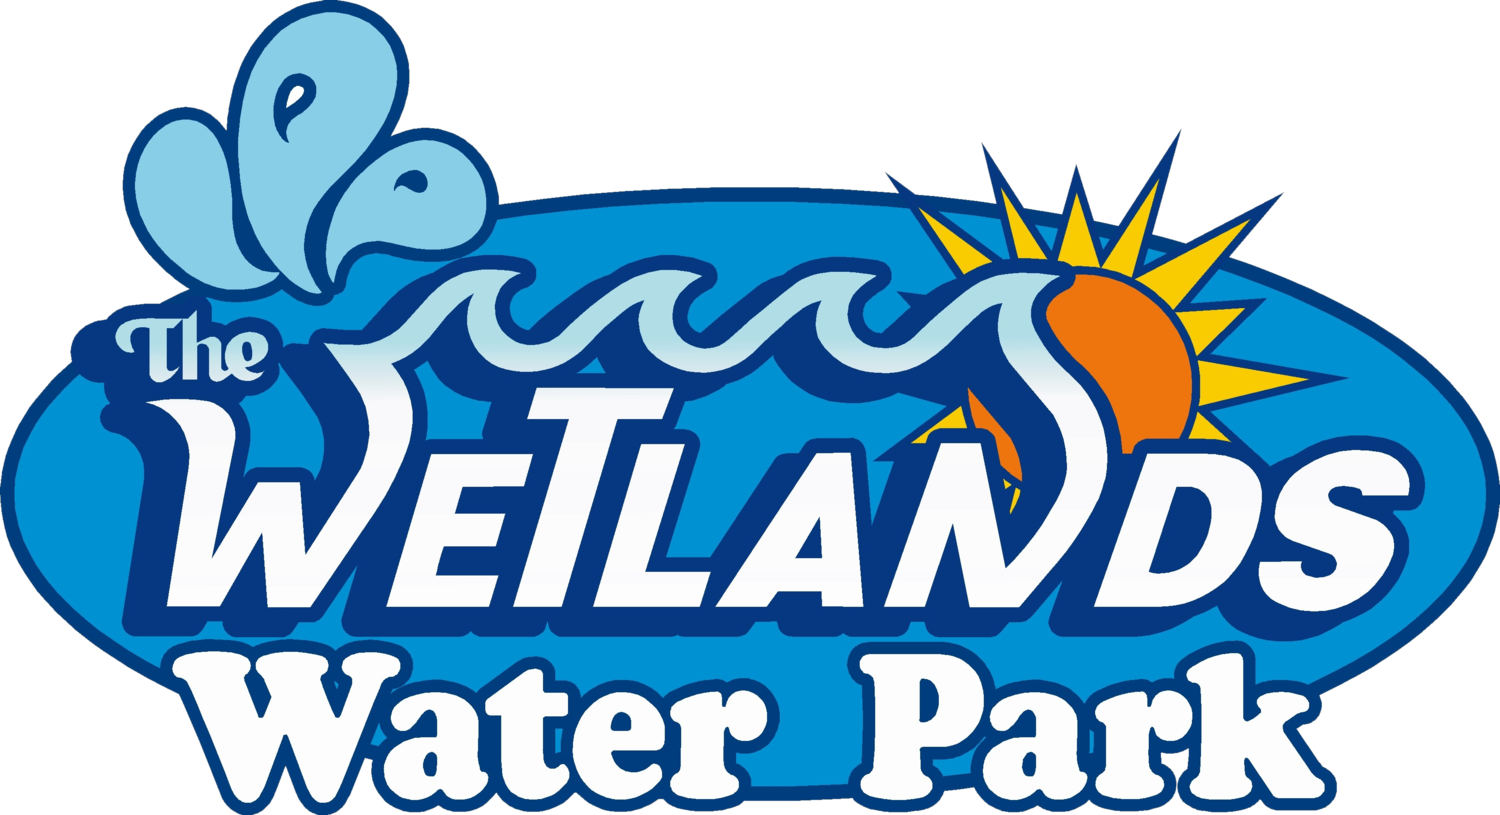 The wetlands . Clipart park water park